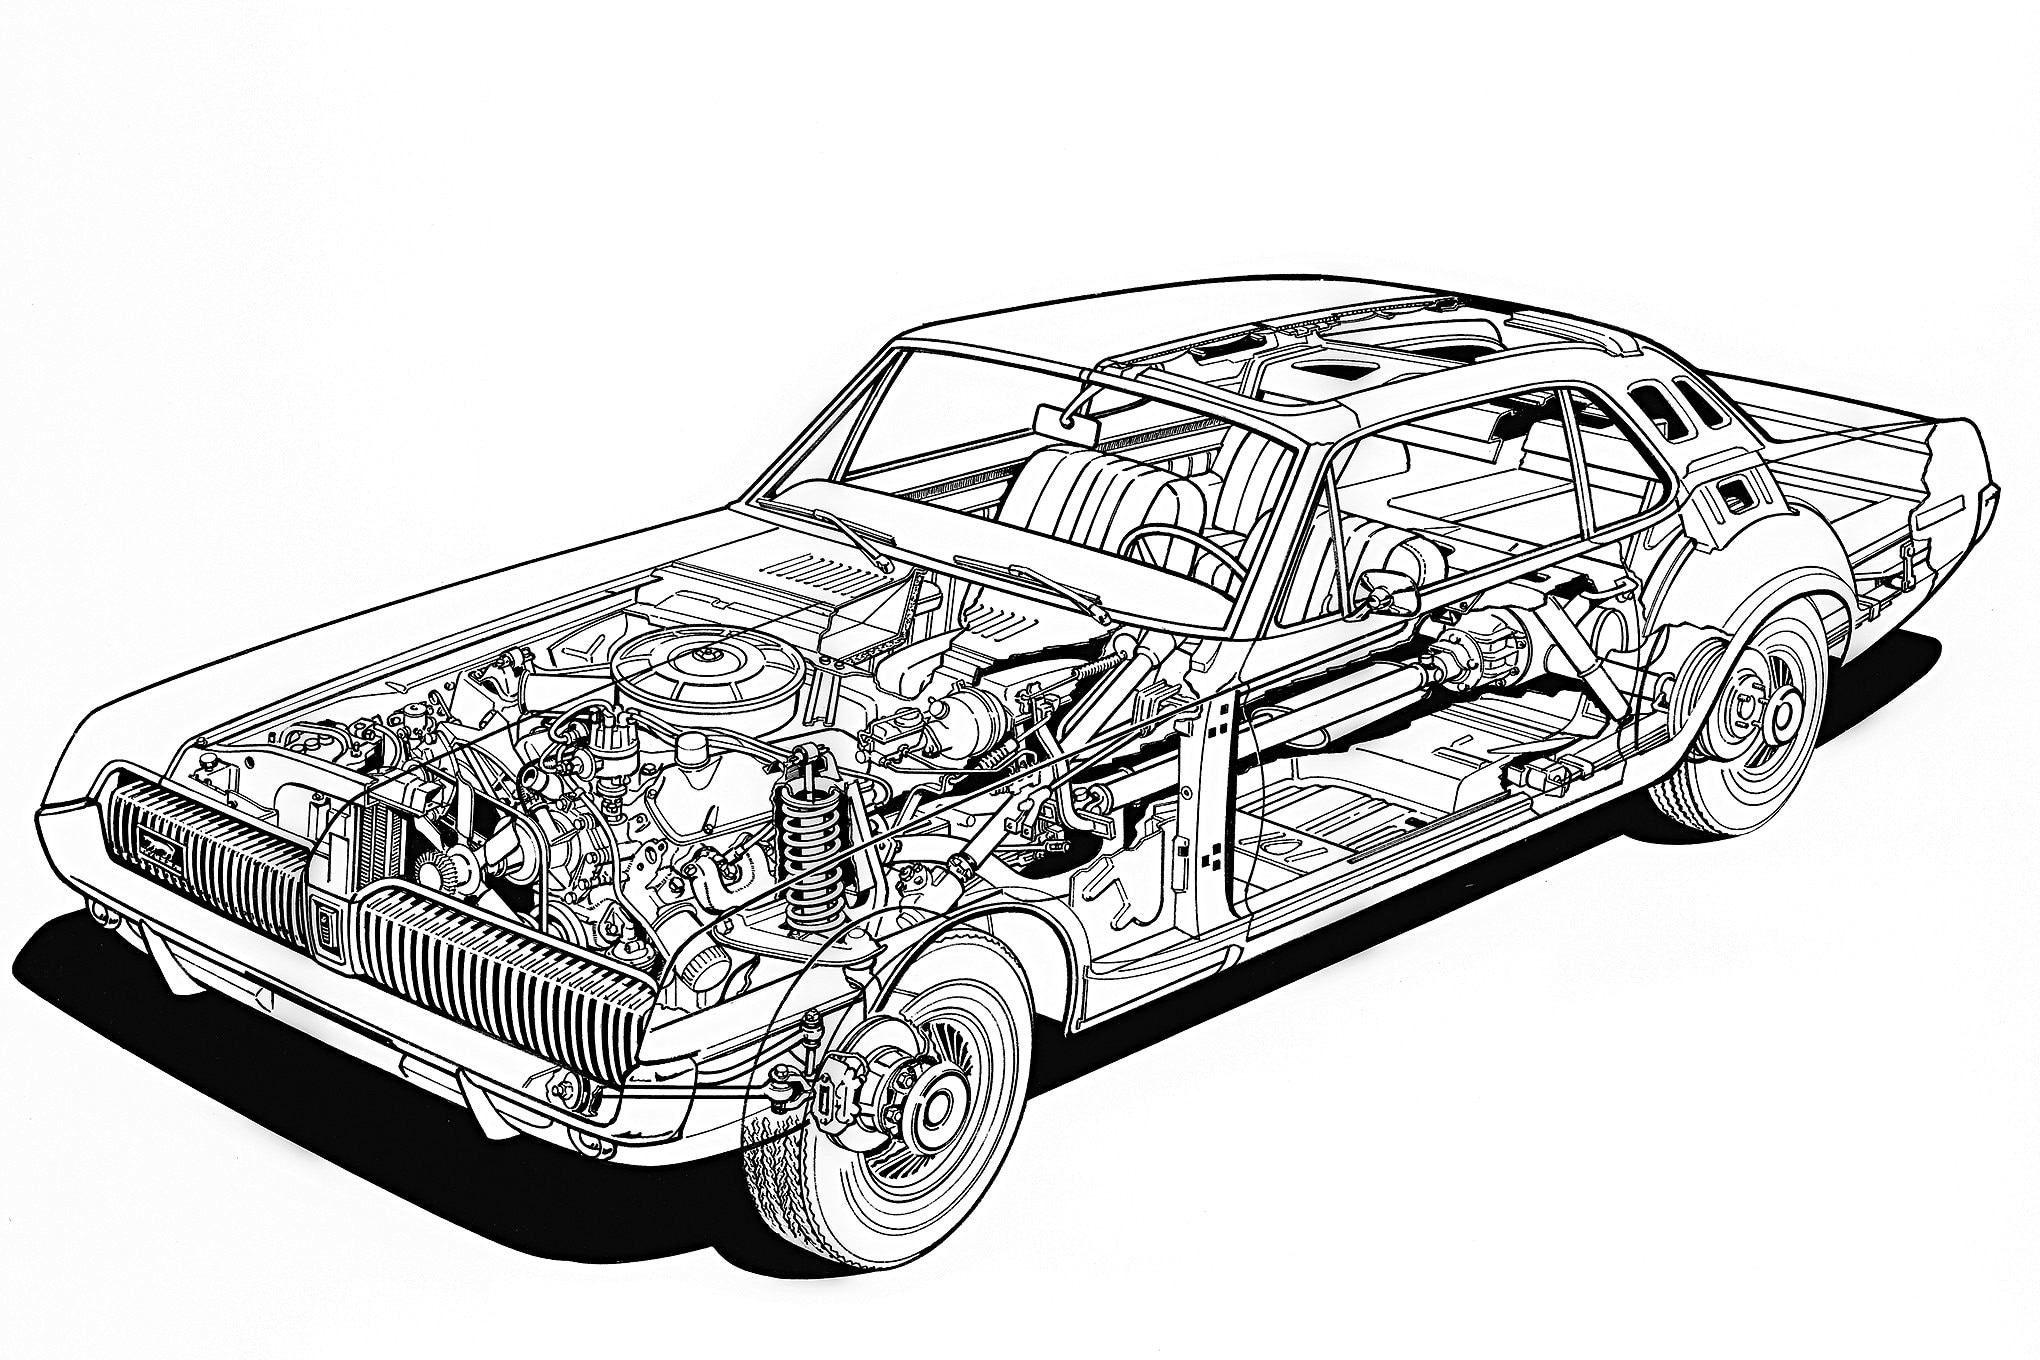 1968 Mercury Cougar Wiring Diagram Sketch Coloring Page